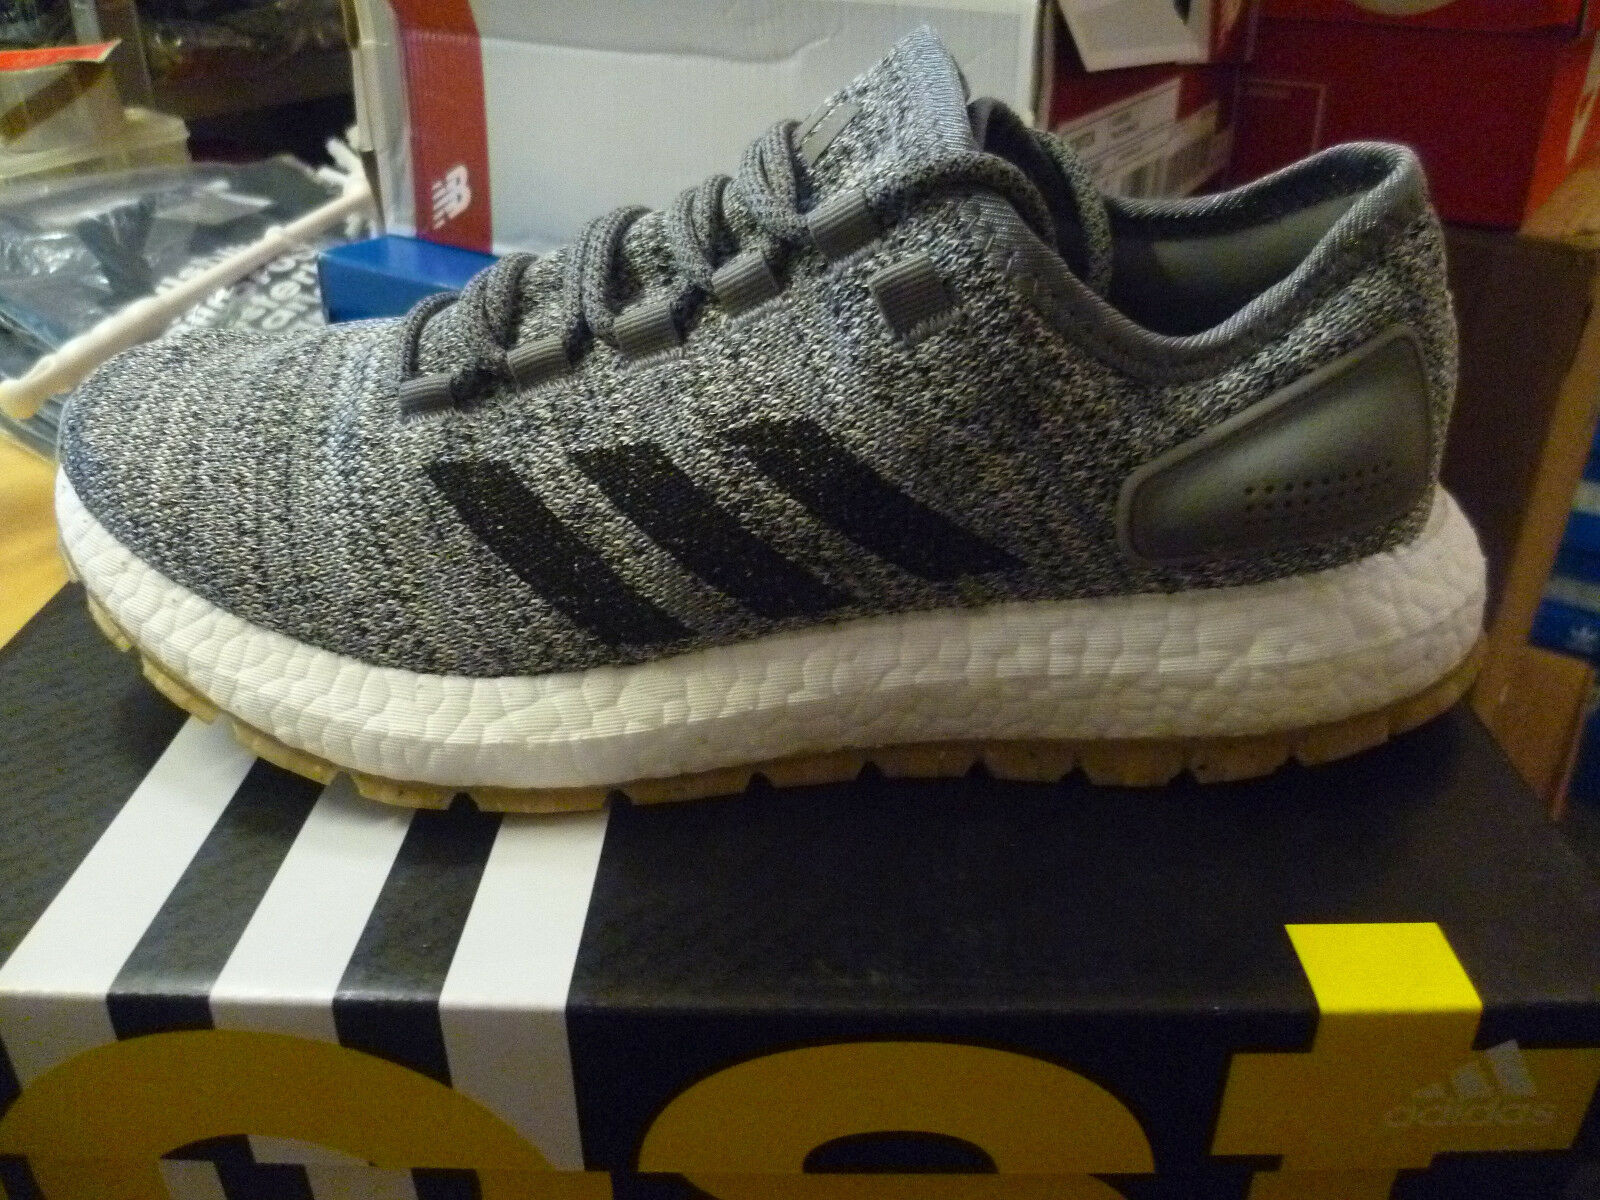 Adidas Pure Boost All Terrain - S 80783 - US 8,5  EUR 42 - NMD, Ultra Boost